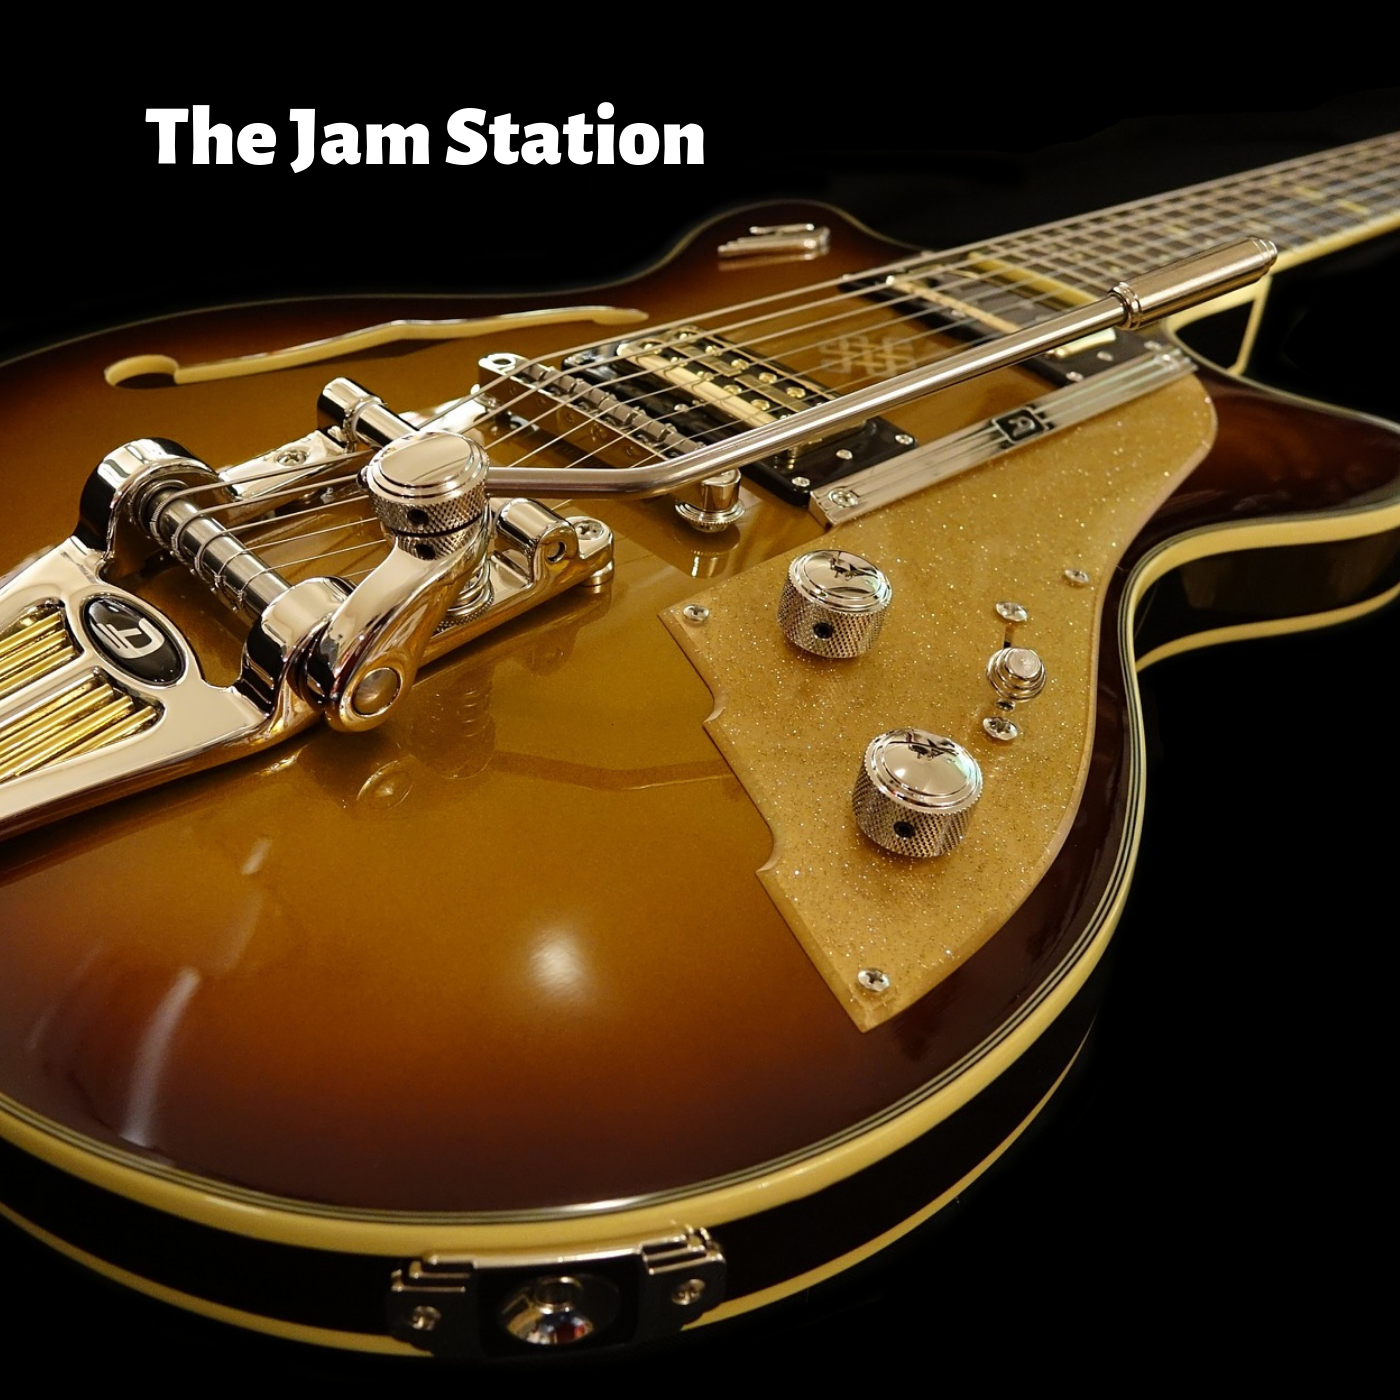 The Jam Station logo, production by composer Arron Storey.